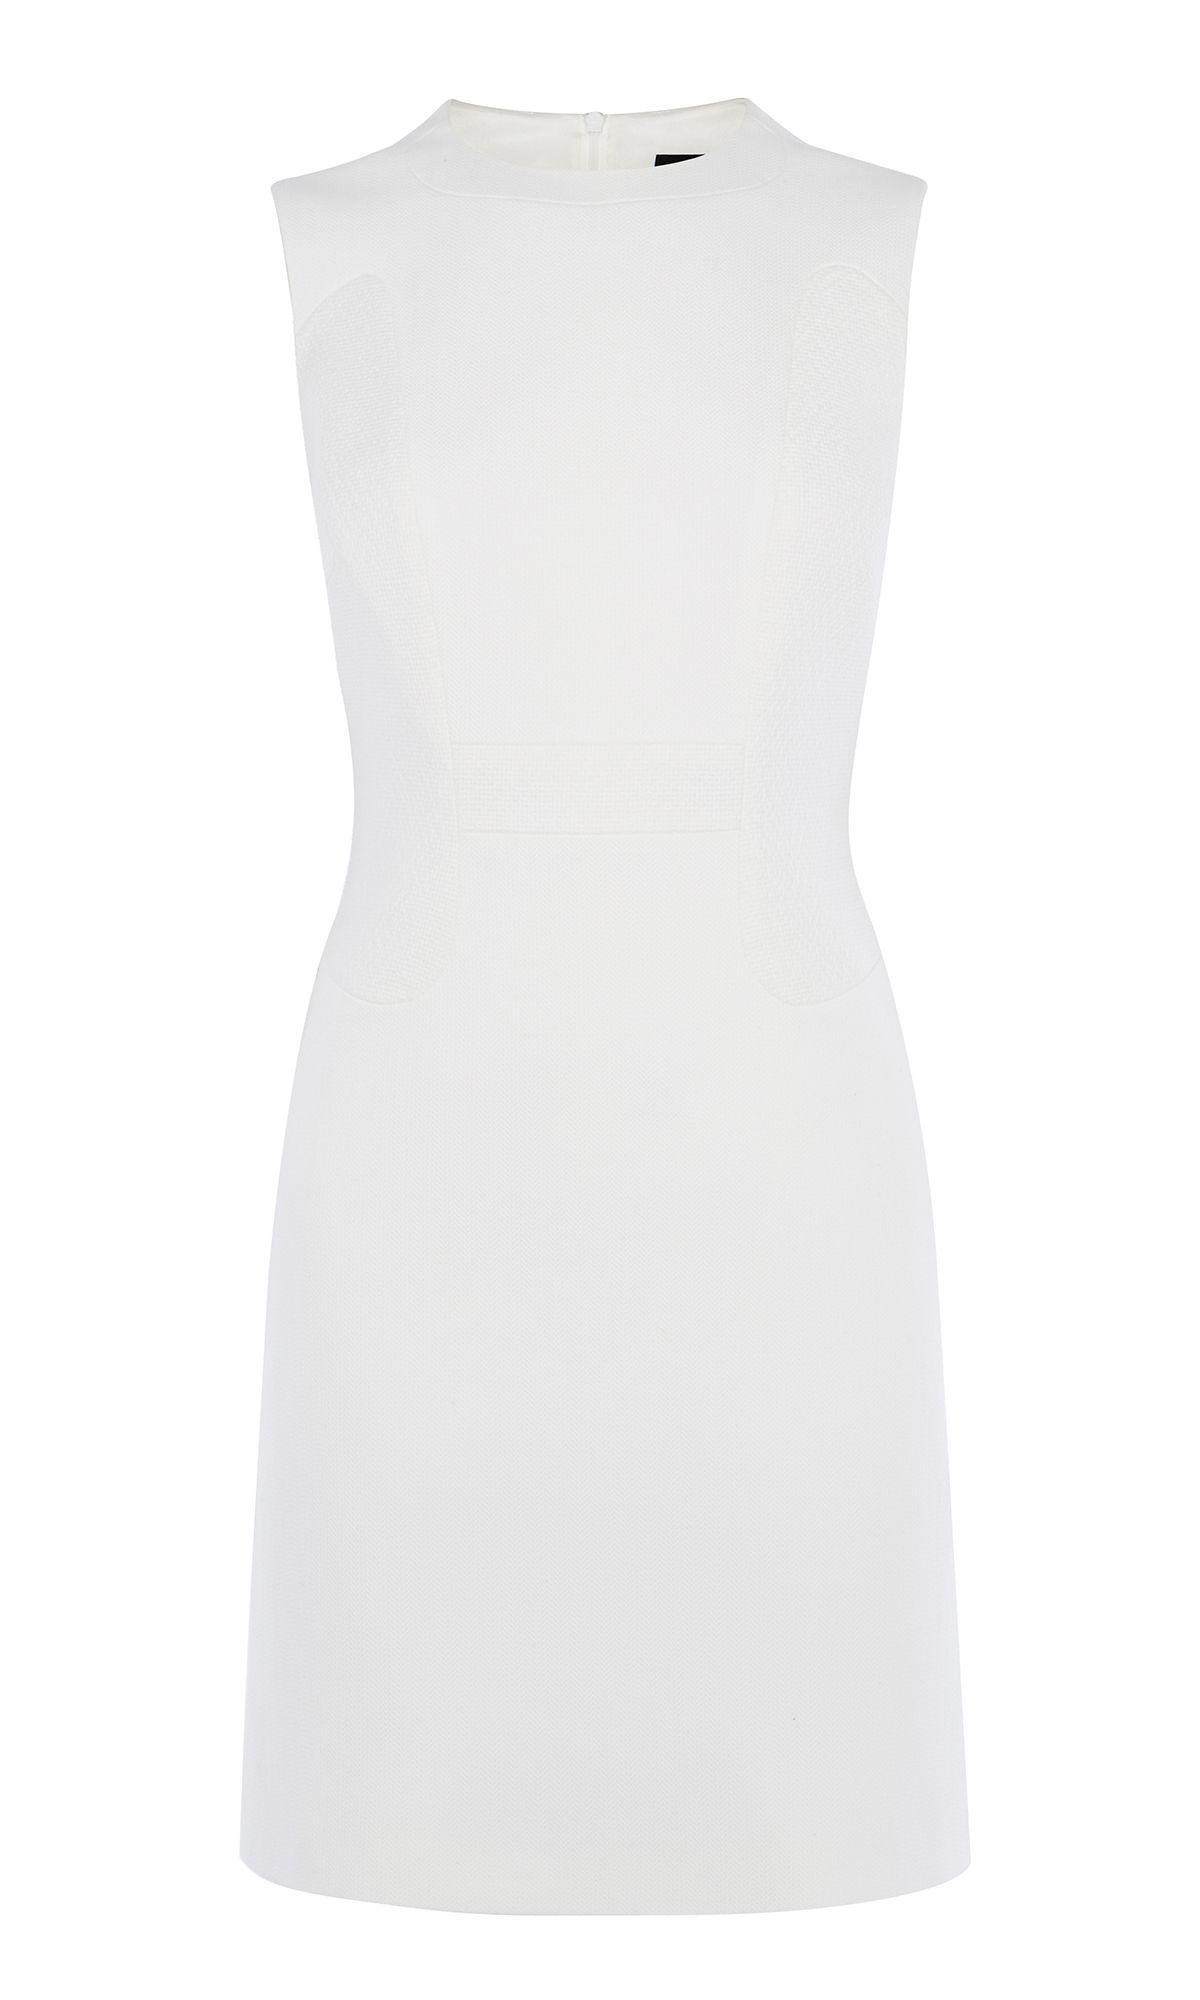 Karen Millen Textured Fitted Dress, White